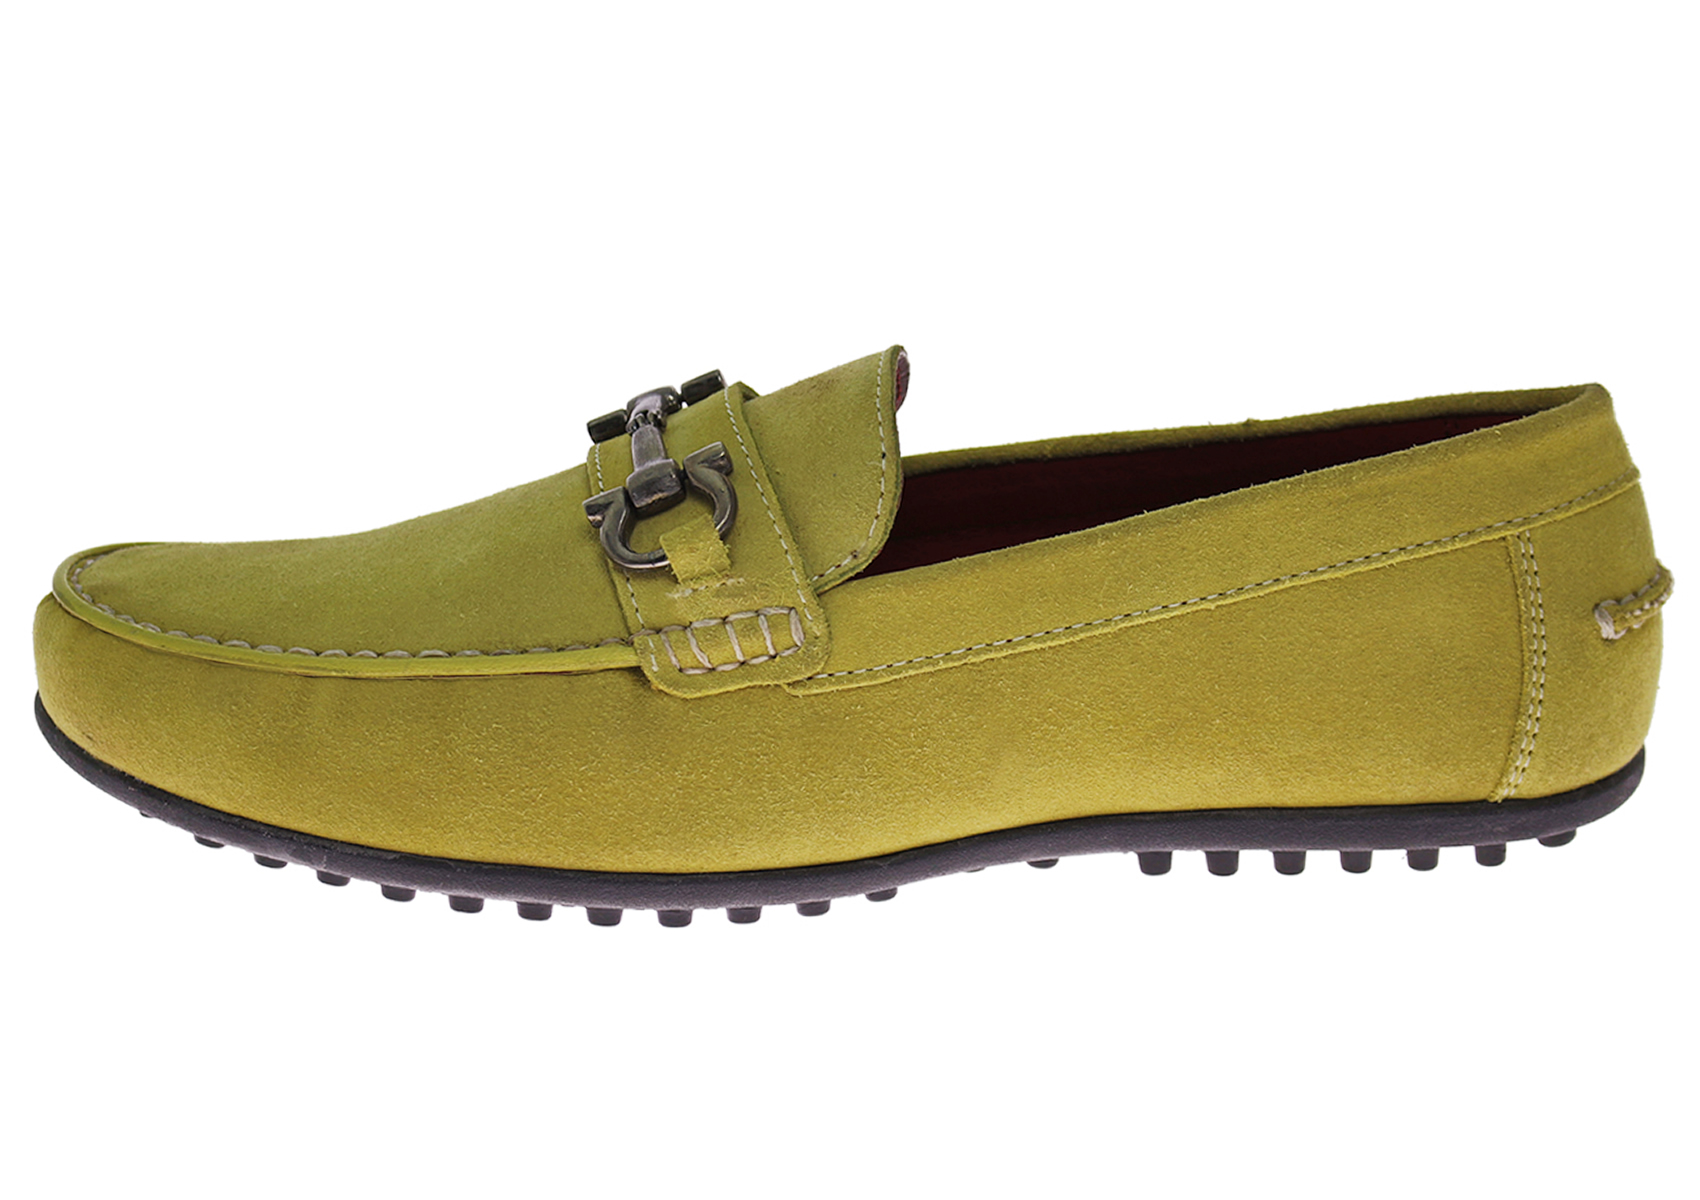 Luciano Natazzi Mens Suede Leather Driving Shoes Kimo Slip-On Moccasin